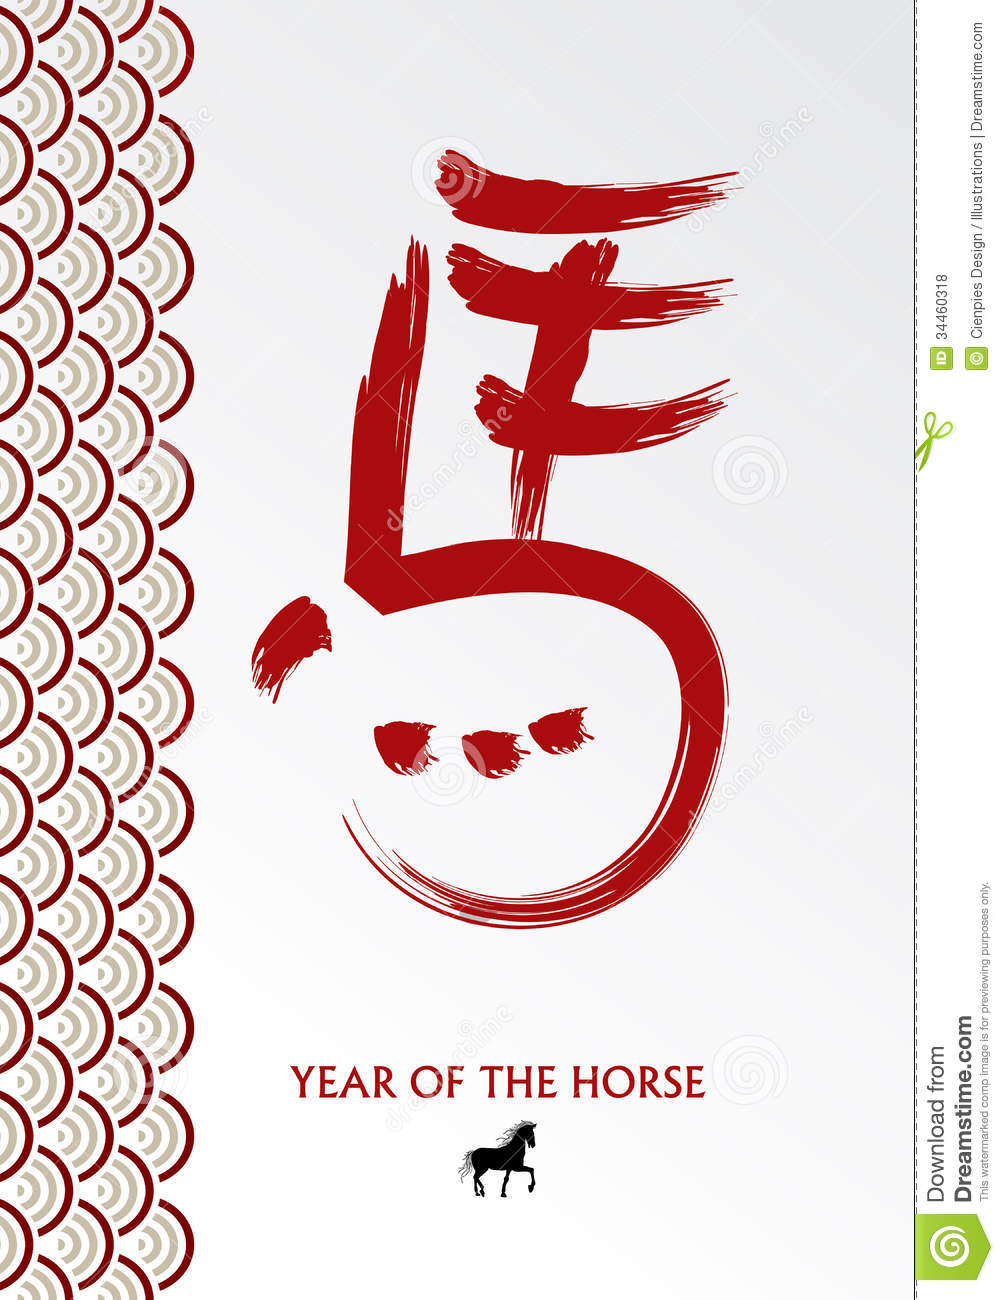 Chinese new year horse brush symbol vector file stock vector royalty free stock photo buycottarizona